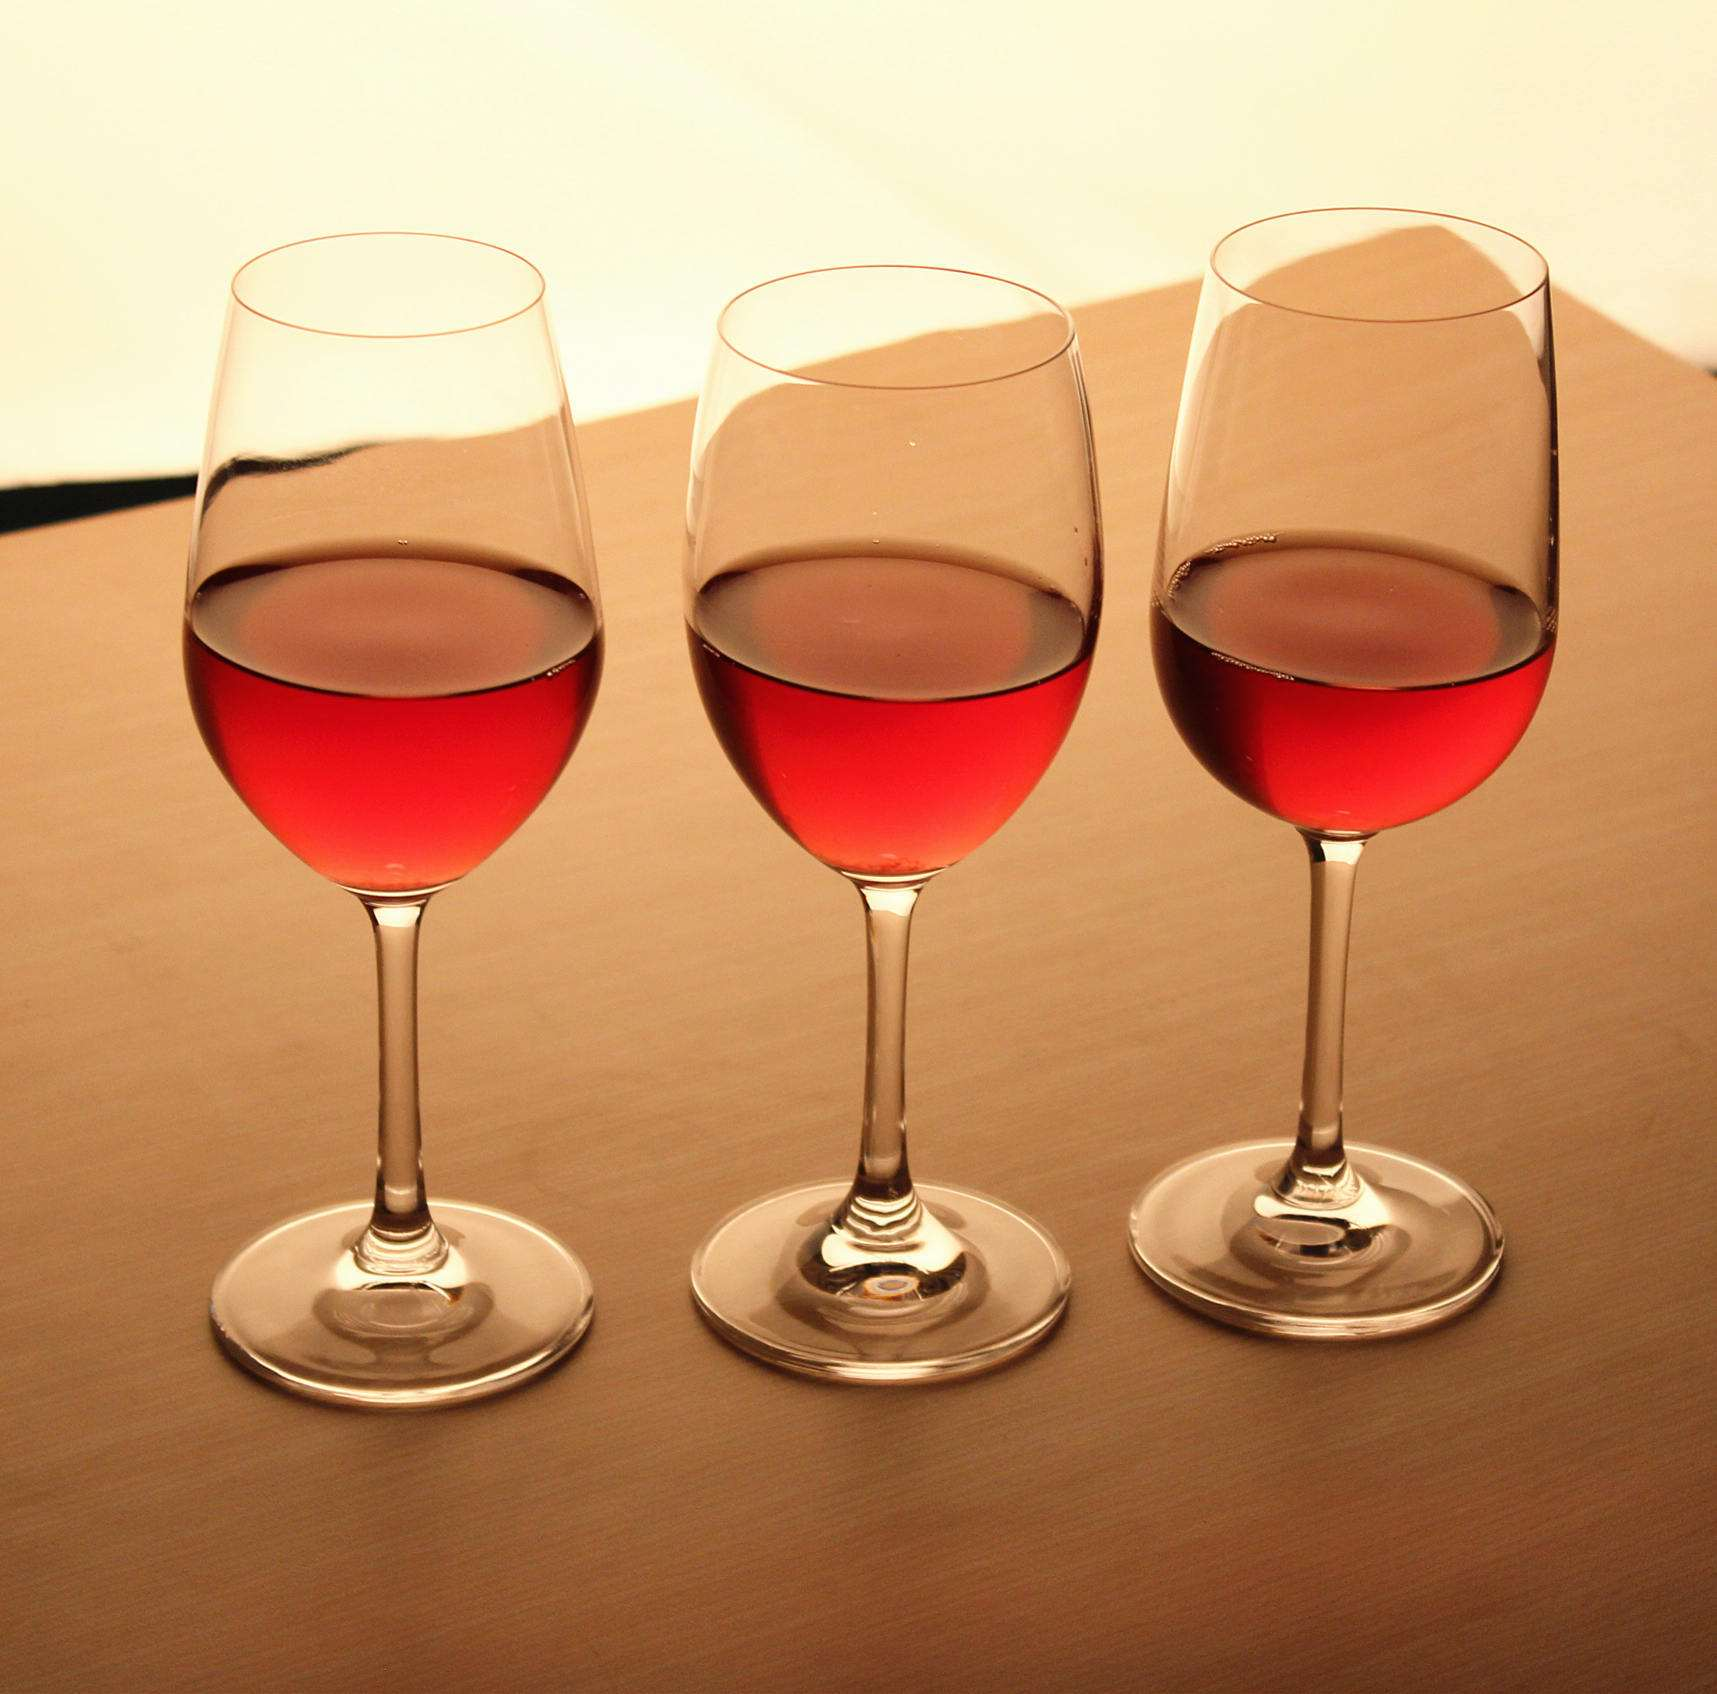 How to identify the quality of red wine glasses